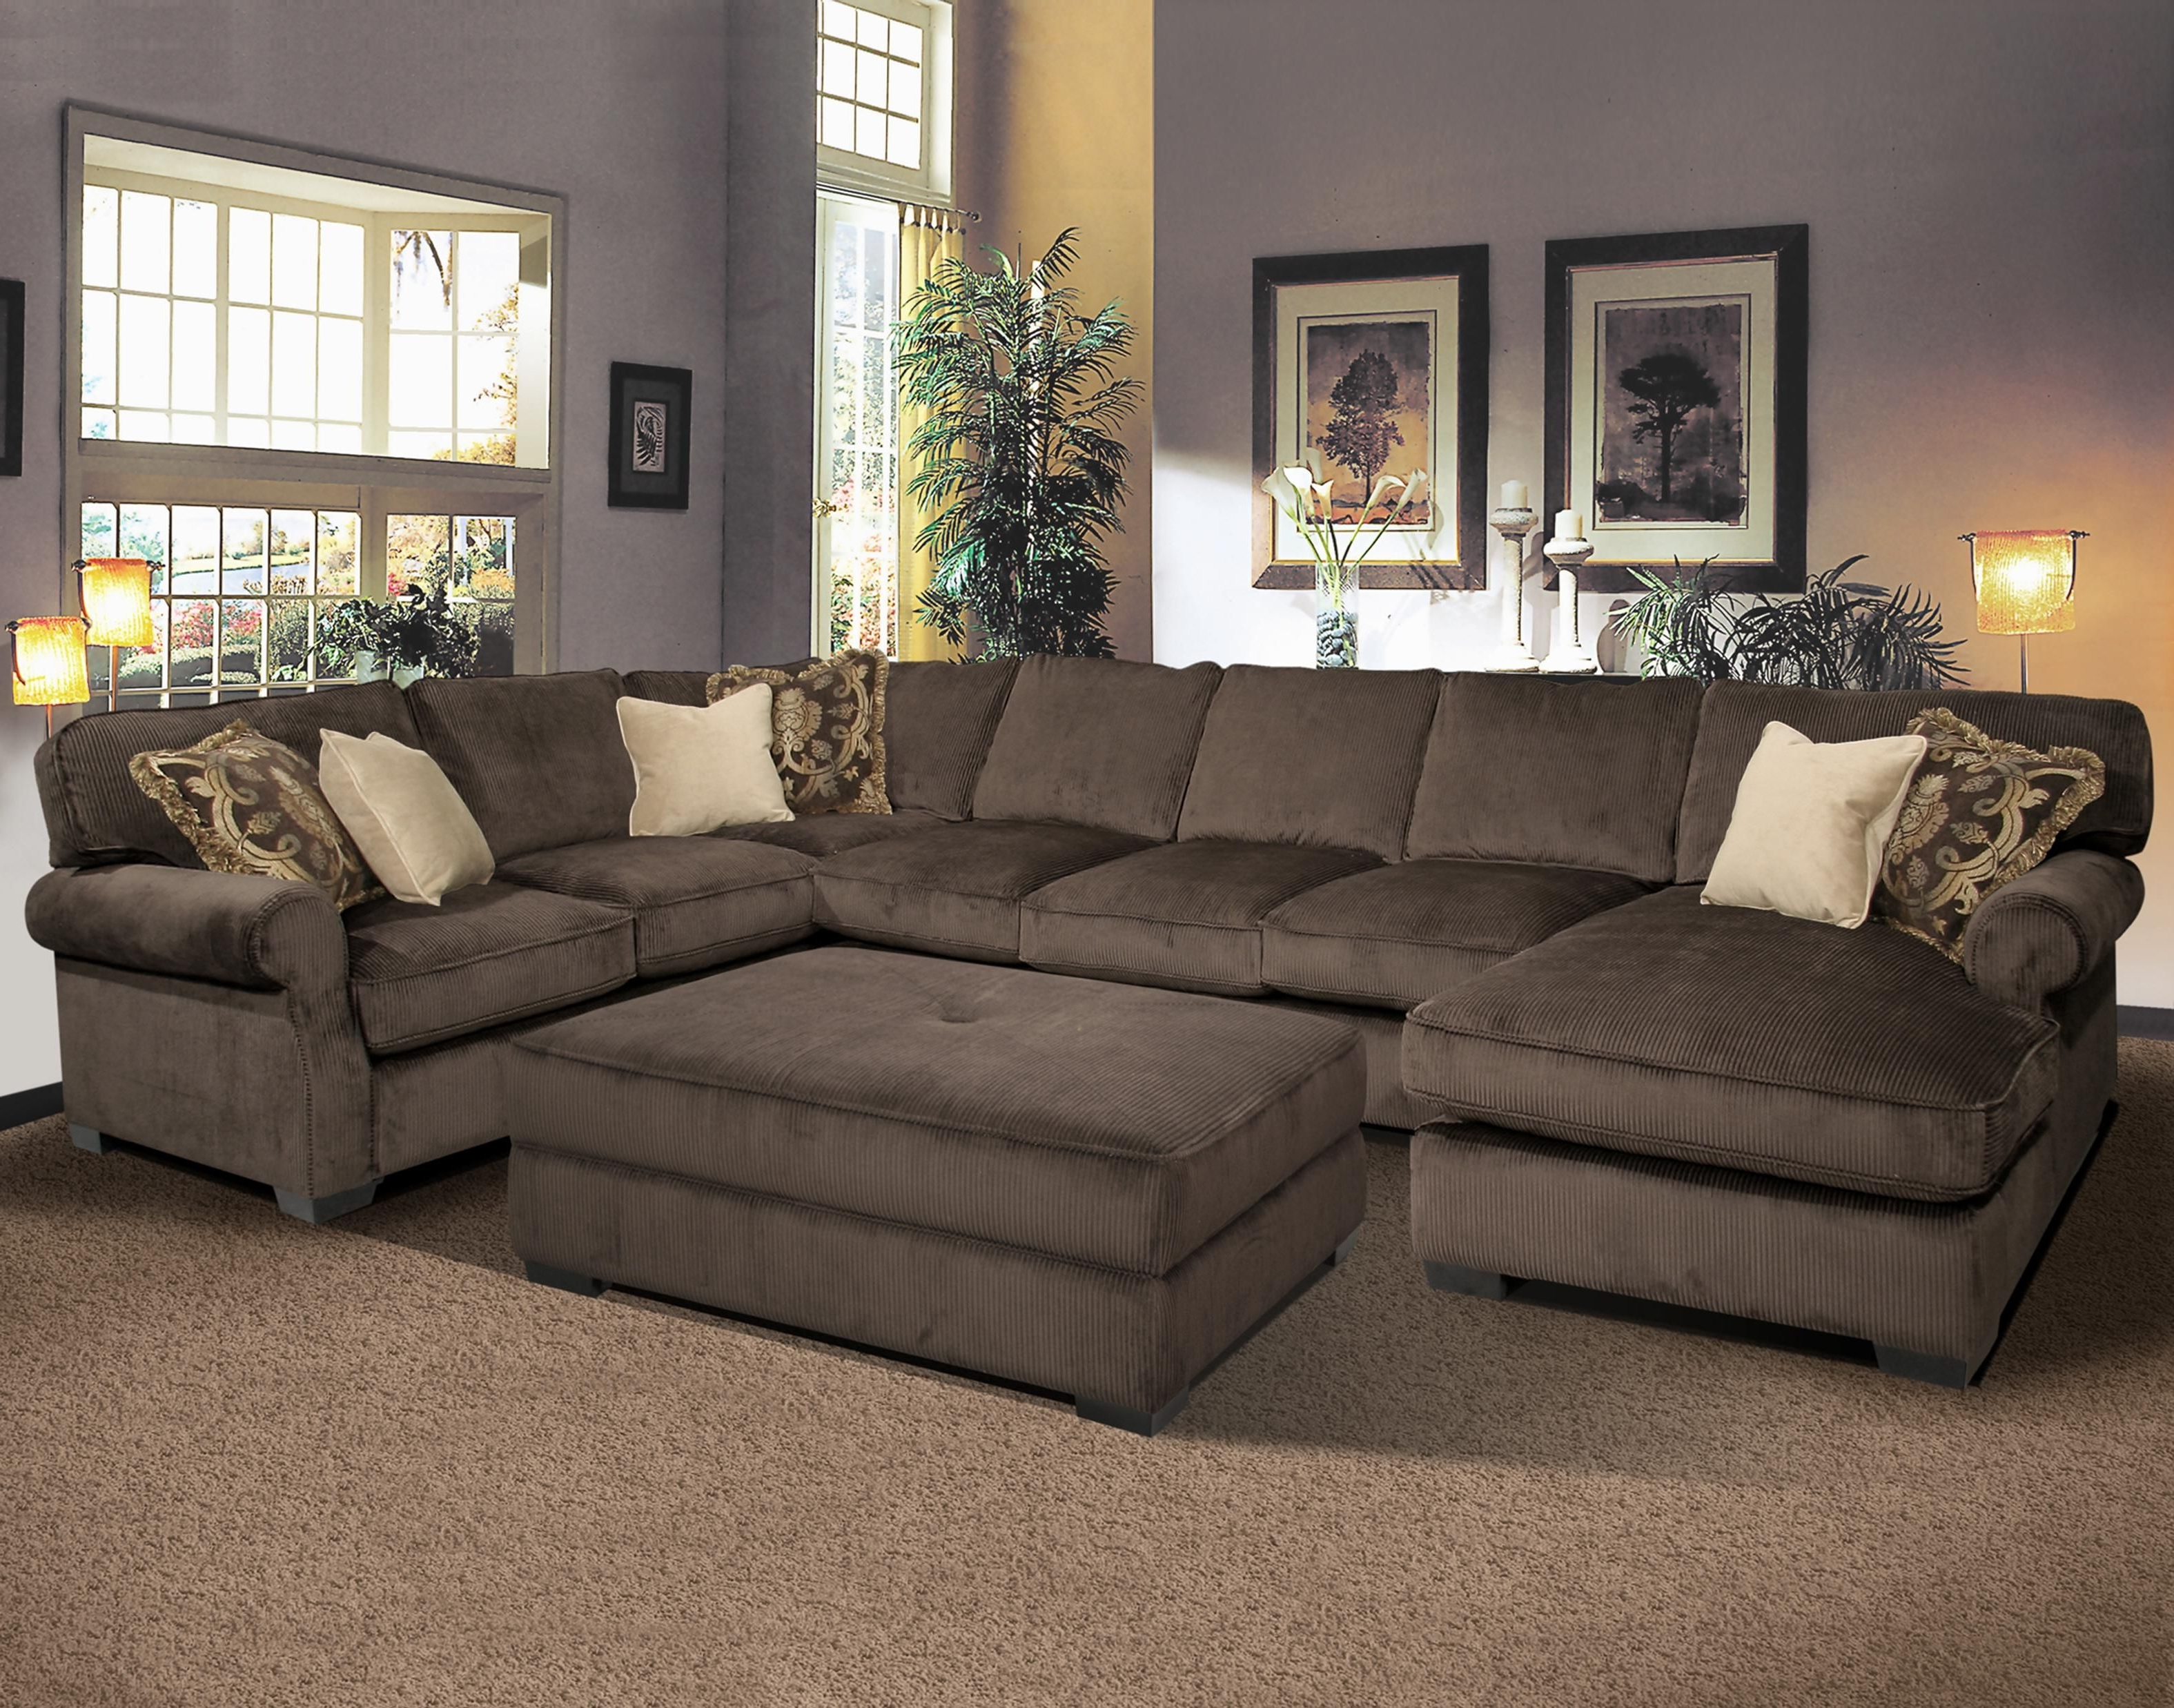 Widely Used Sofas With Ottoman Within Large Sectional Sofa With Ottoman (View 20 of 20)